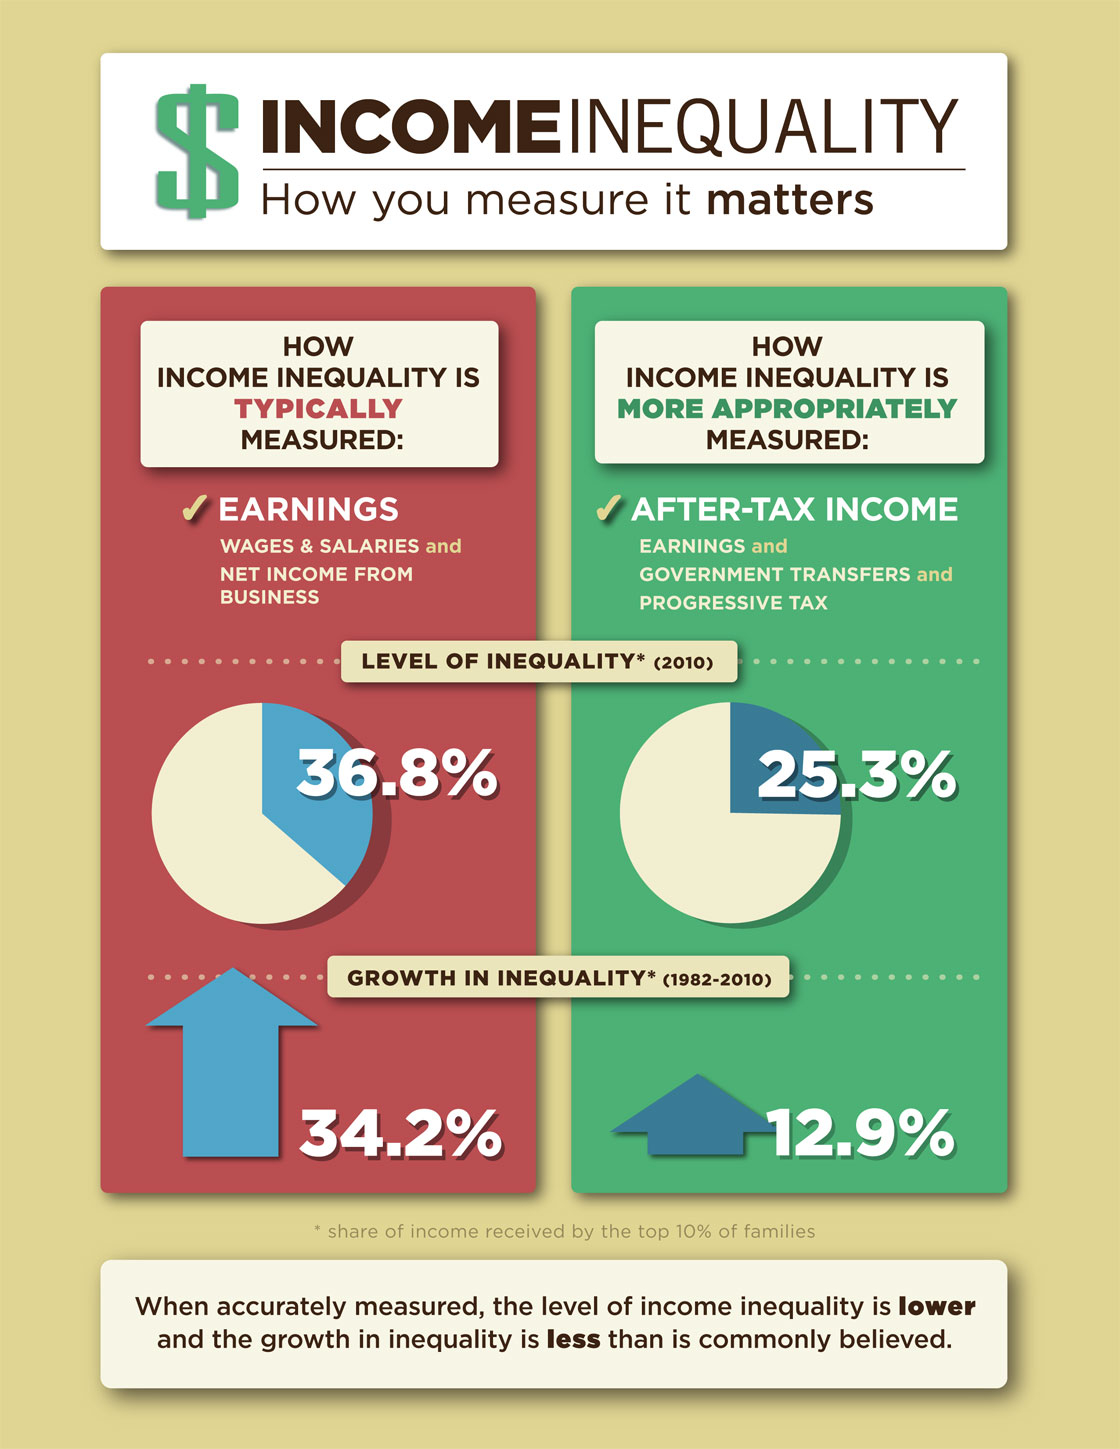 income-inequality-measurement-sensitivities-infographic.jpg | Fraser ...